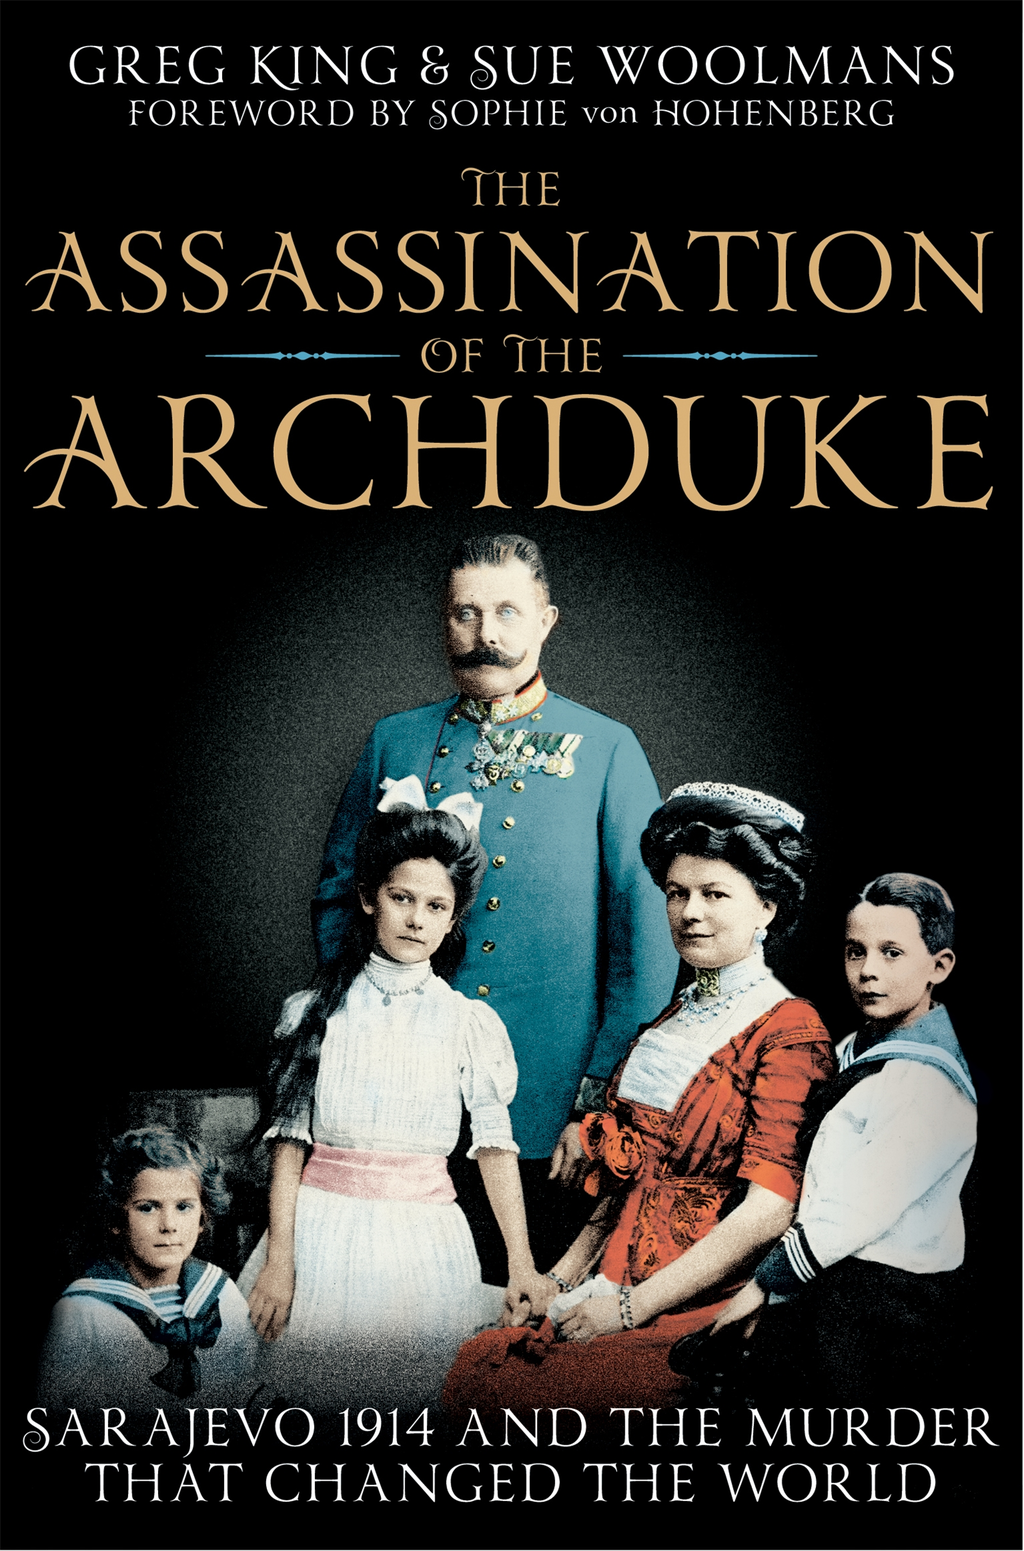 The Assassination of the Archduke Sarajevo 1914 and the Murder that Changed the World